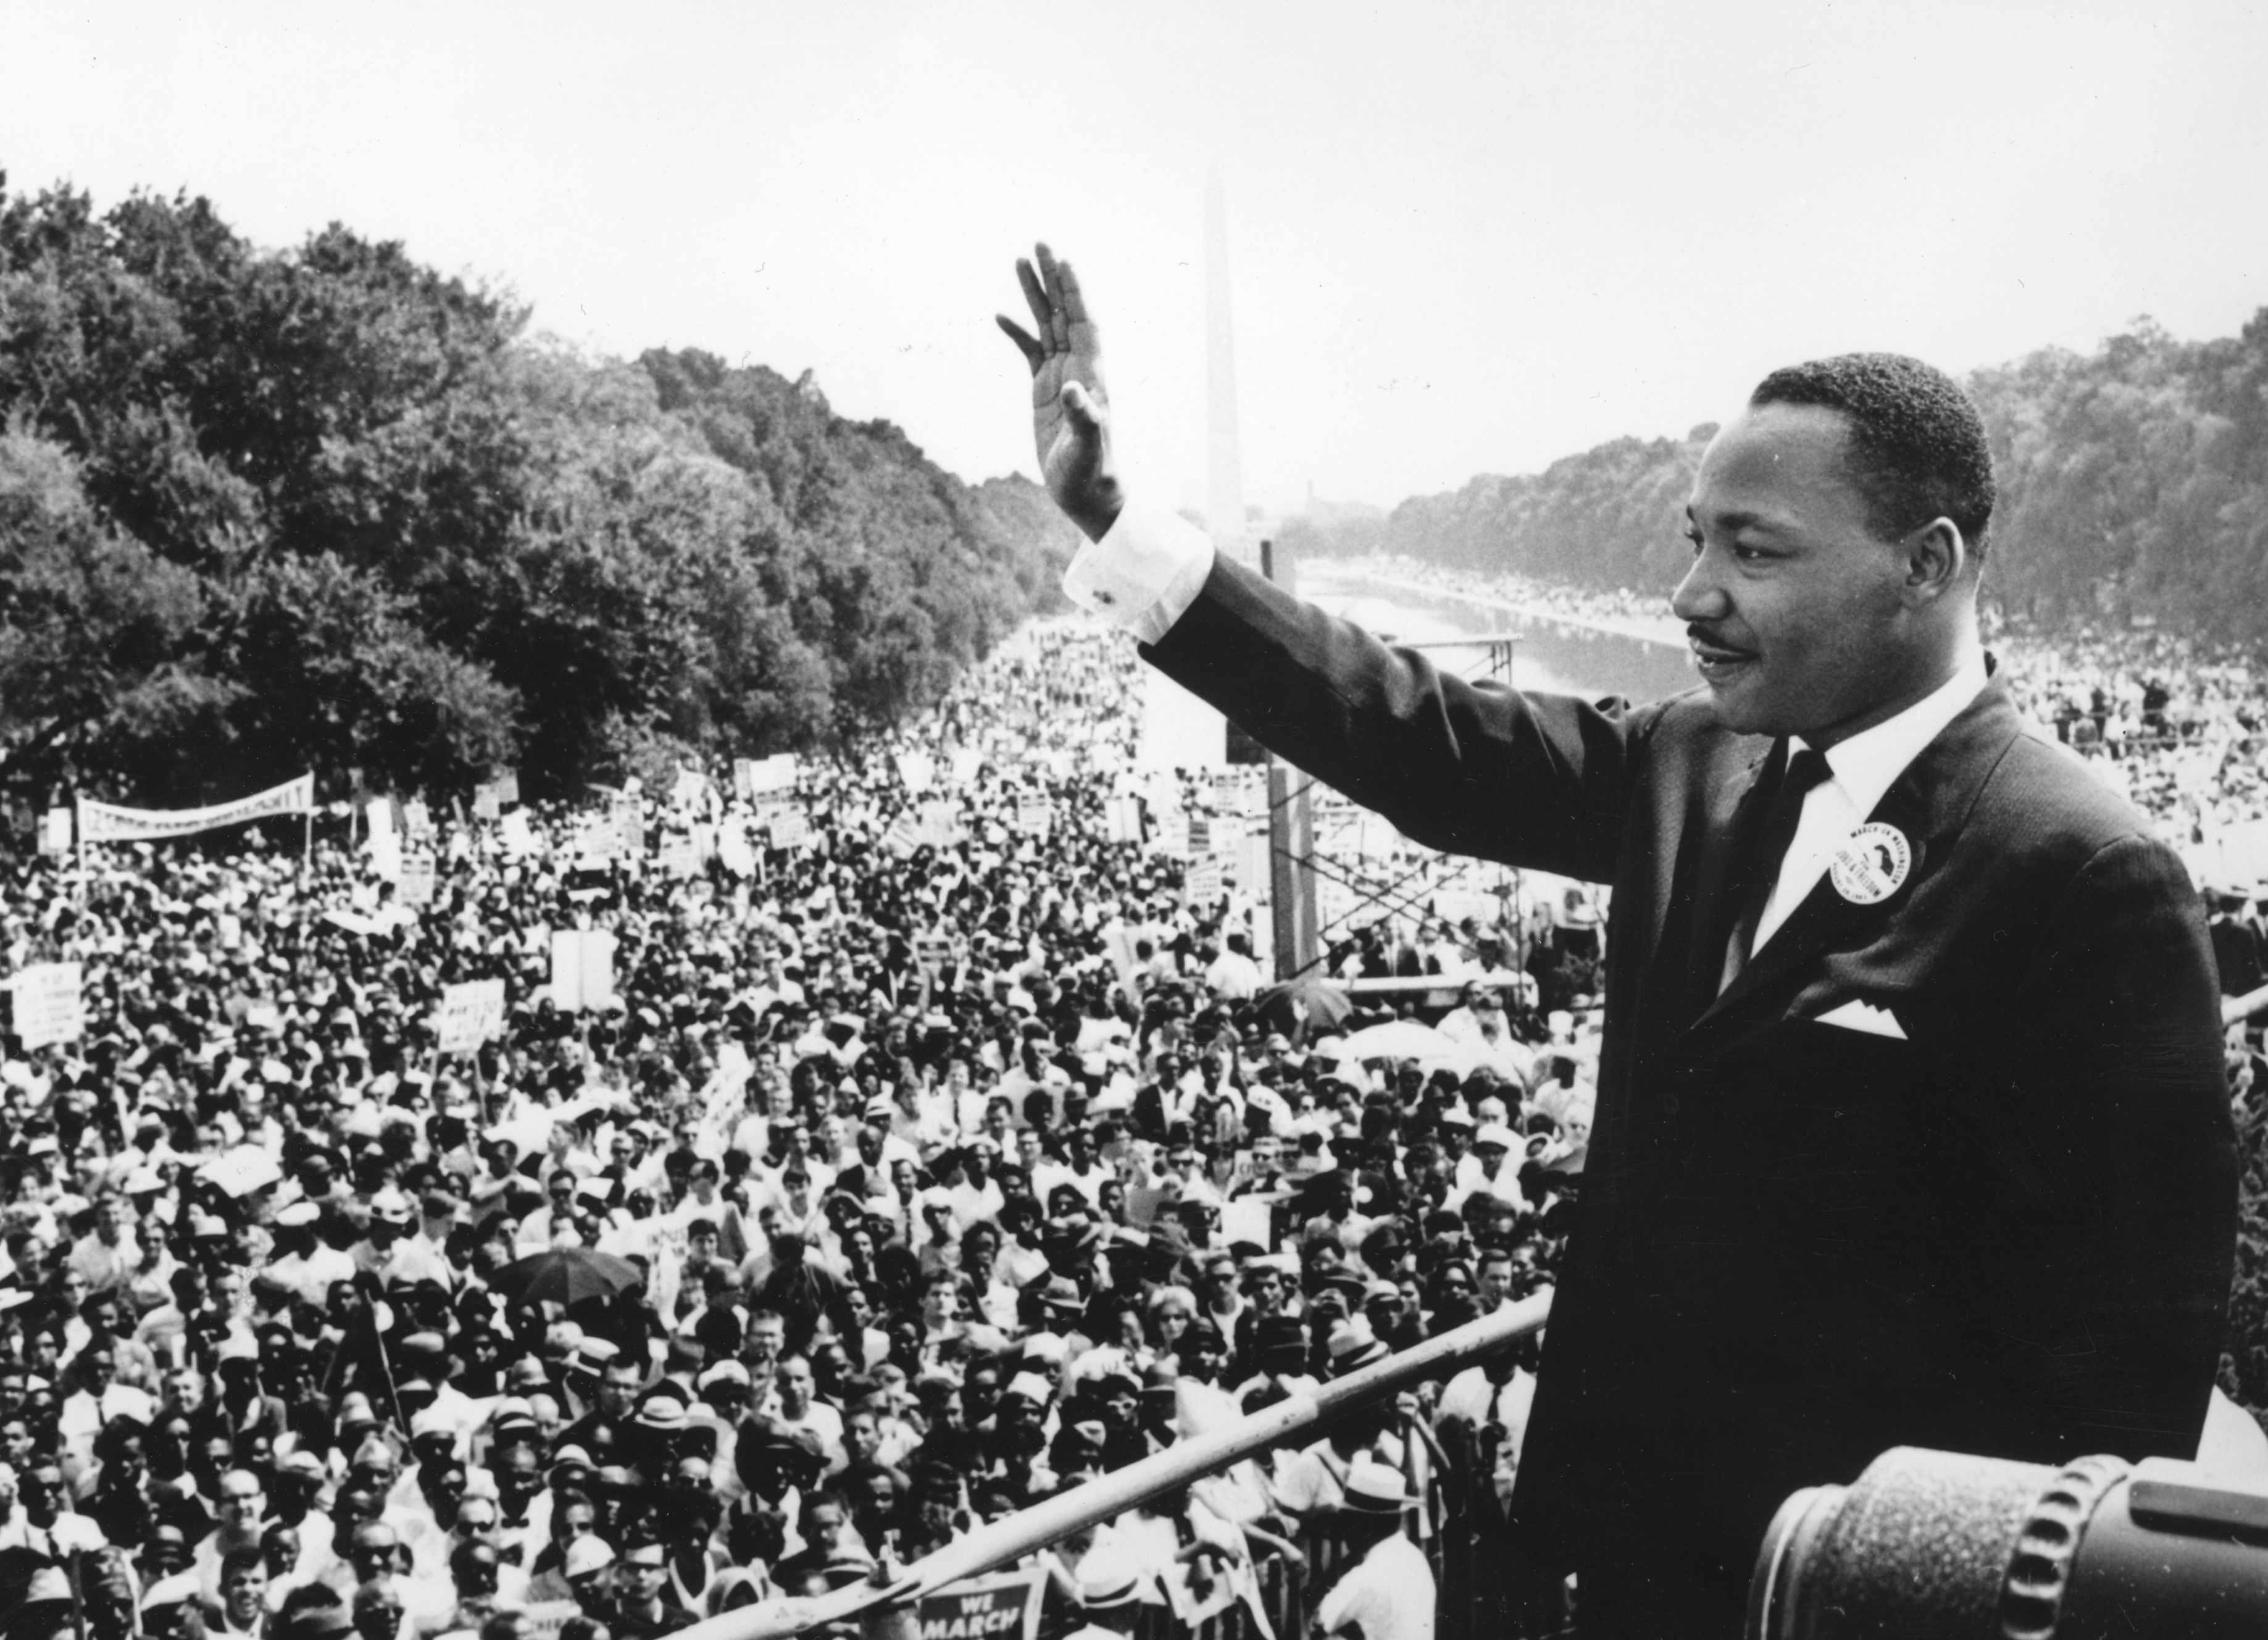 American civil rights leader Martin Luther King